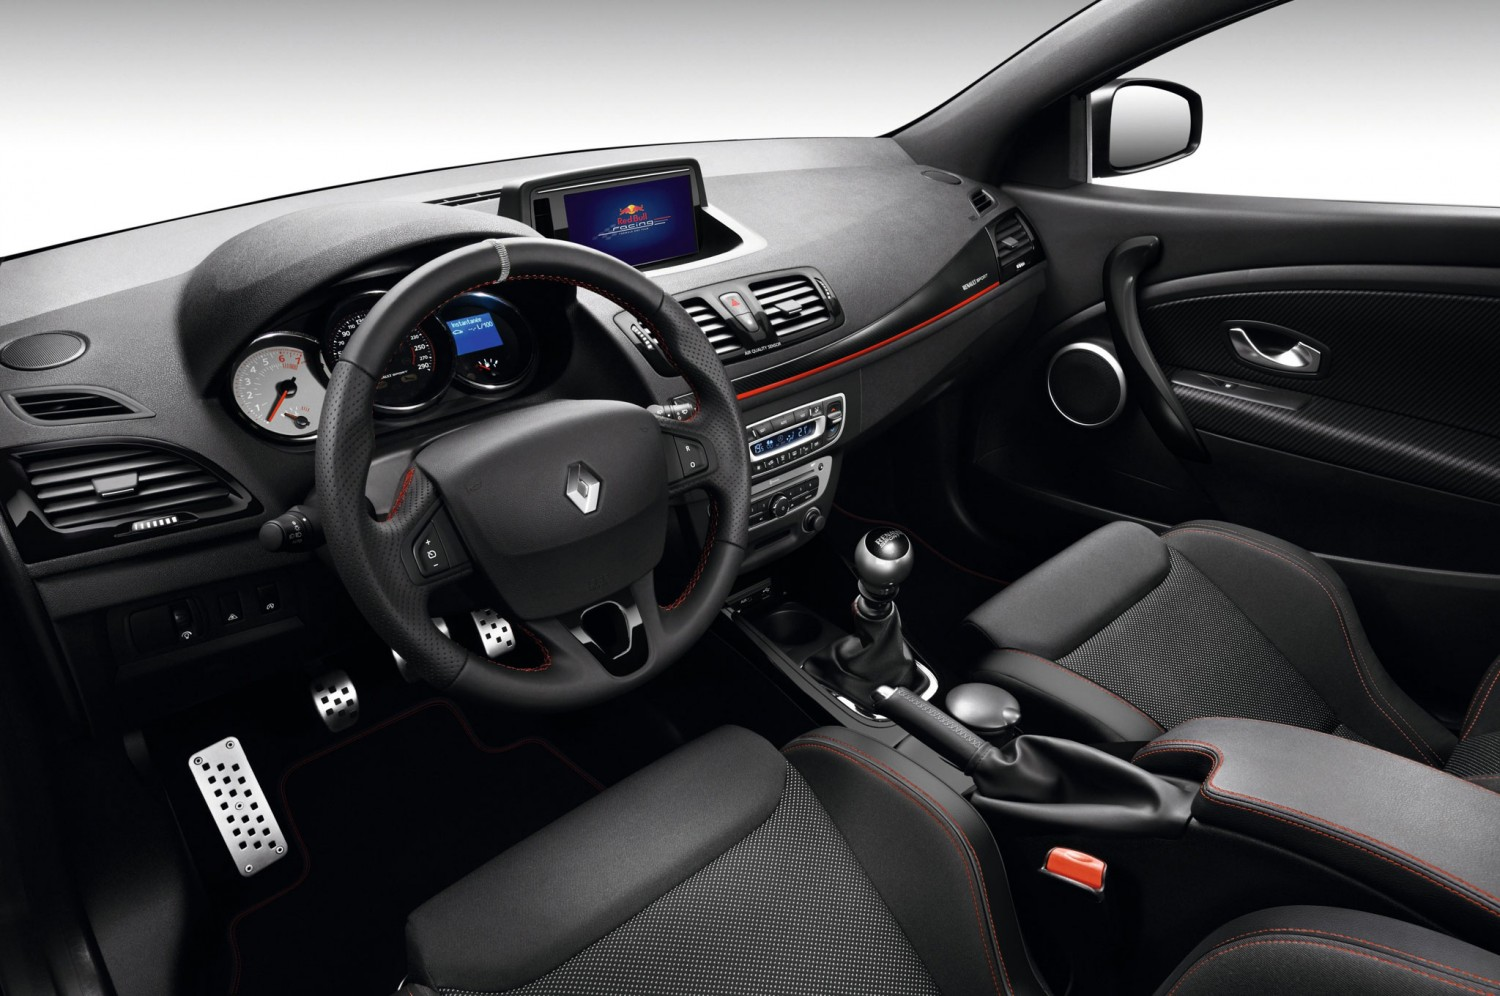 2014 Renault Megane Price and Release Date